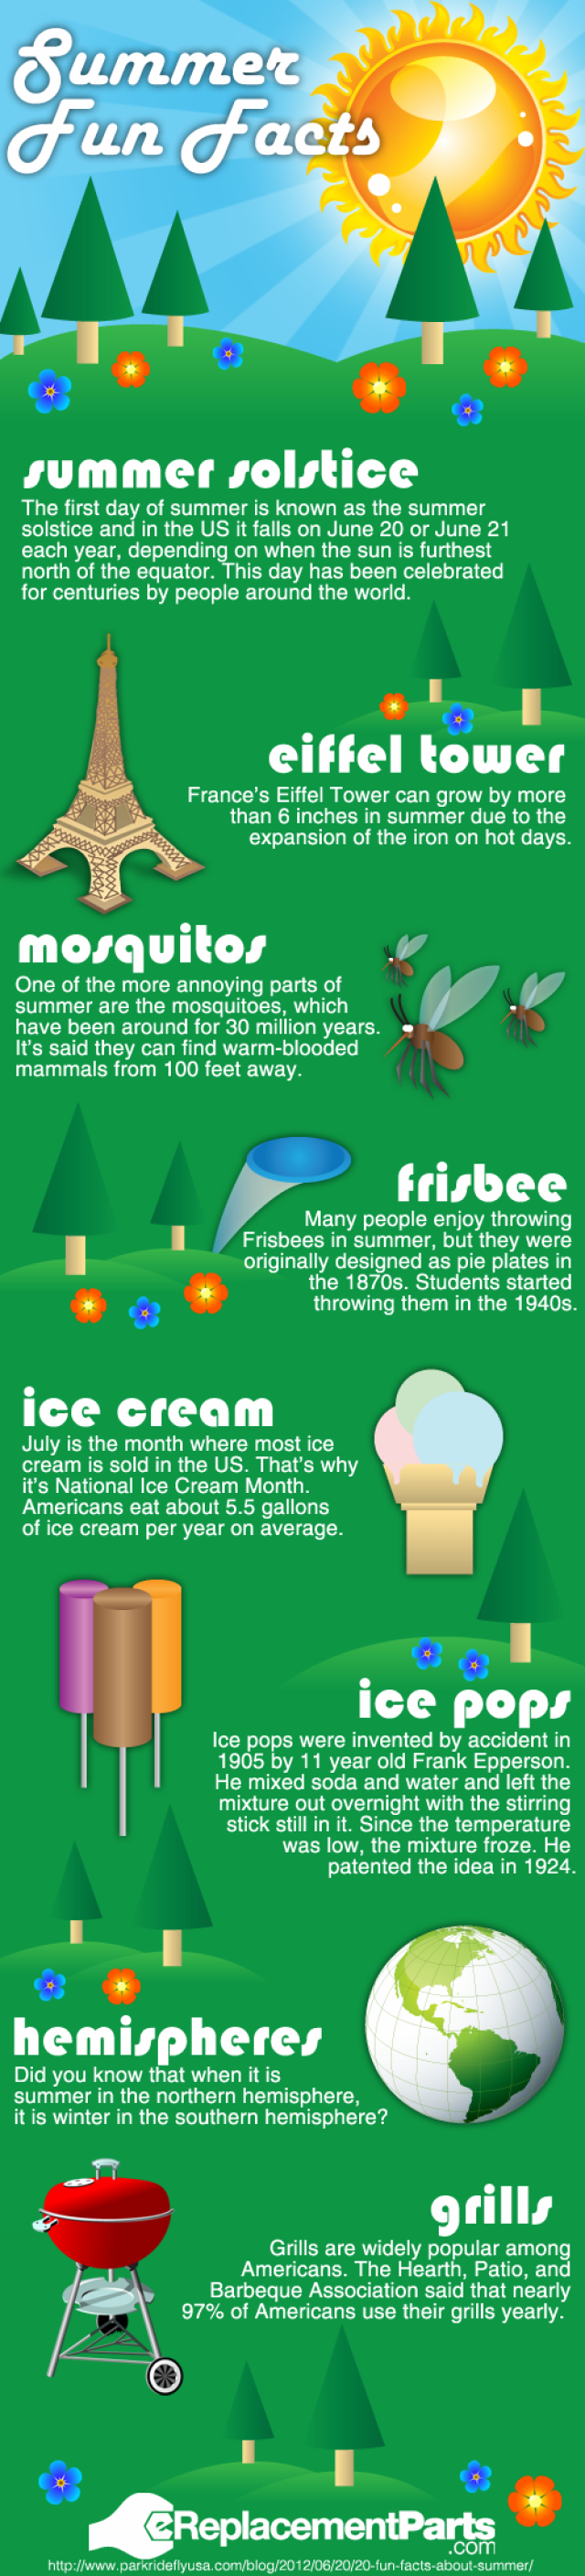 Summer Fun Facts